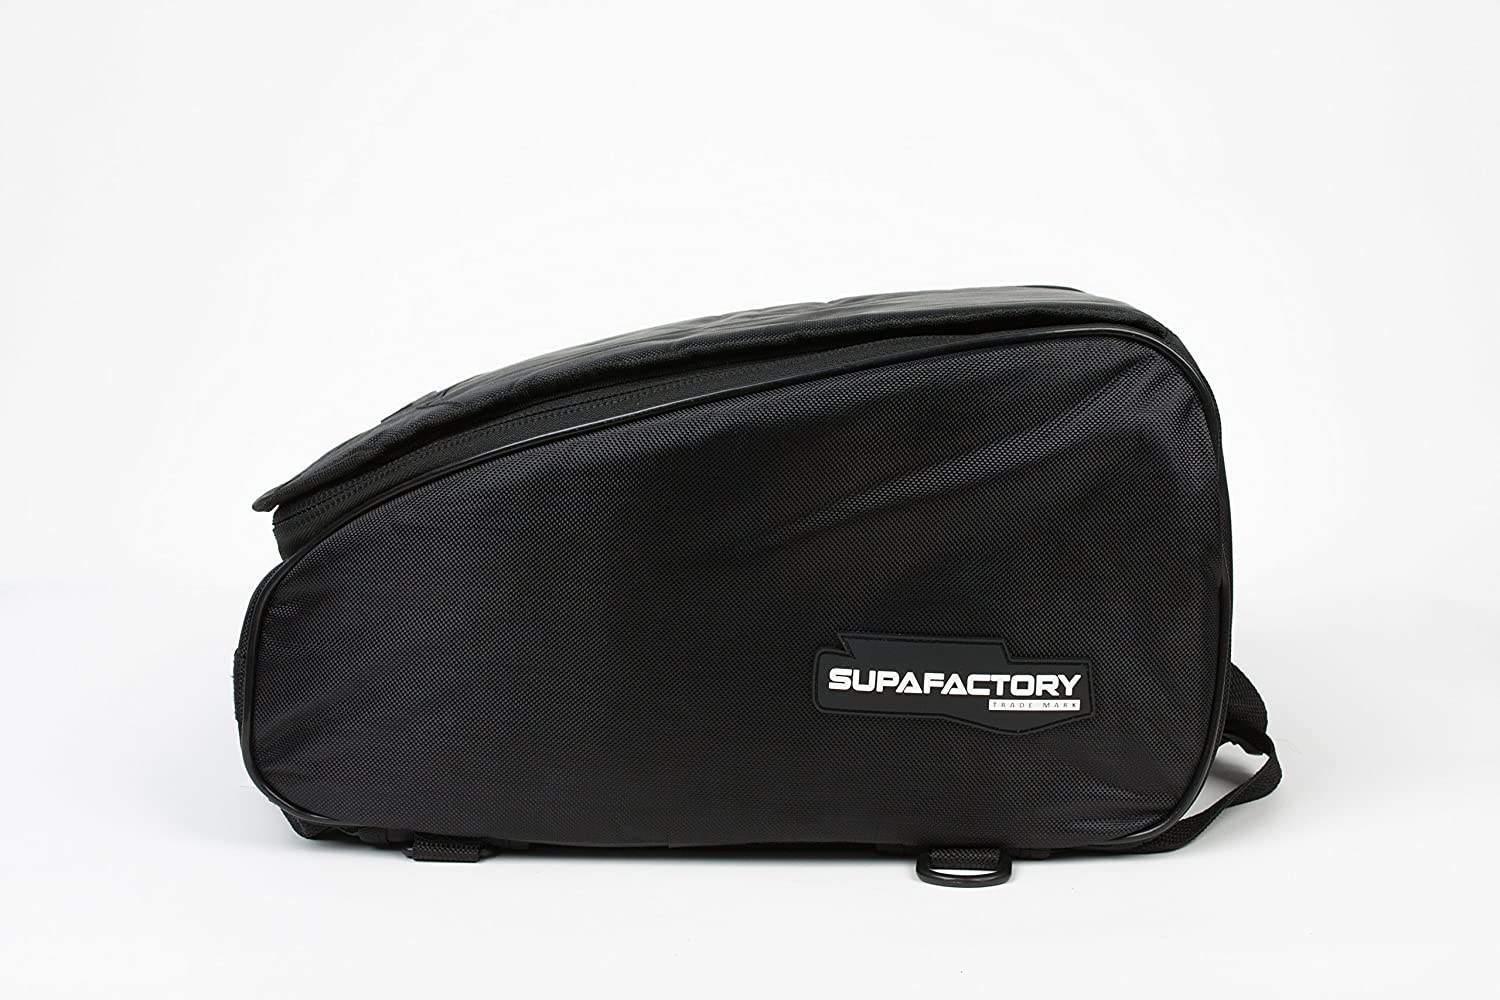 Supafactory Tail Bag For Motorcycles /& Motorbikes SF-TB-A1